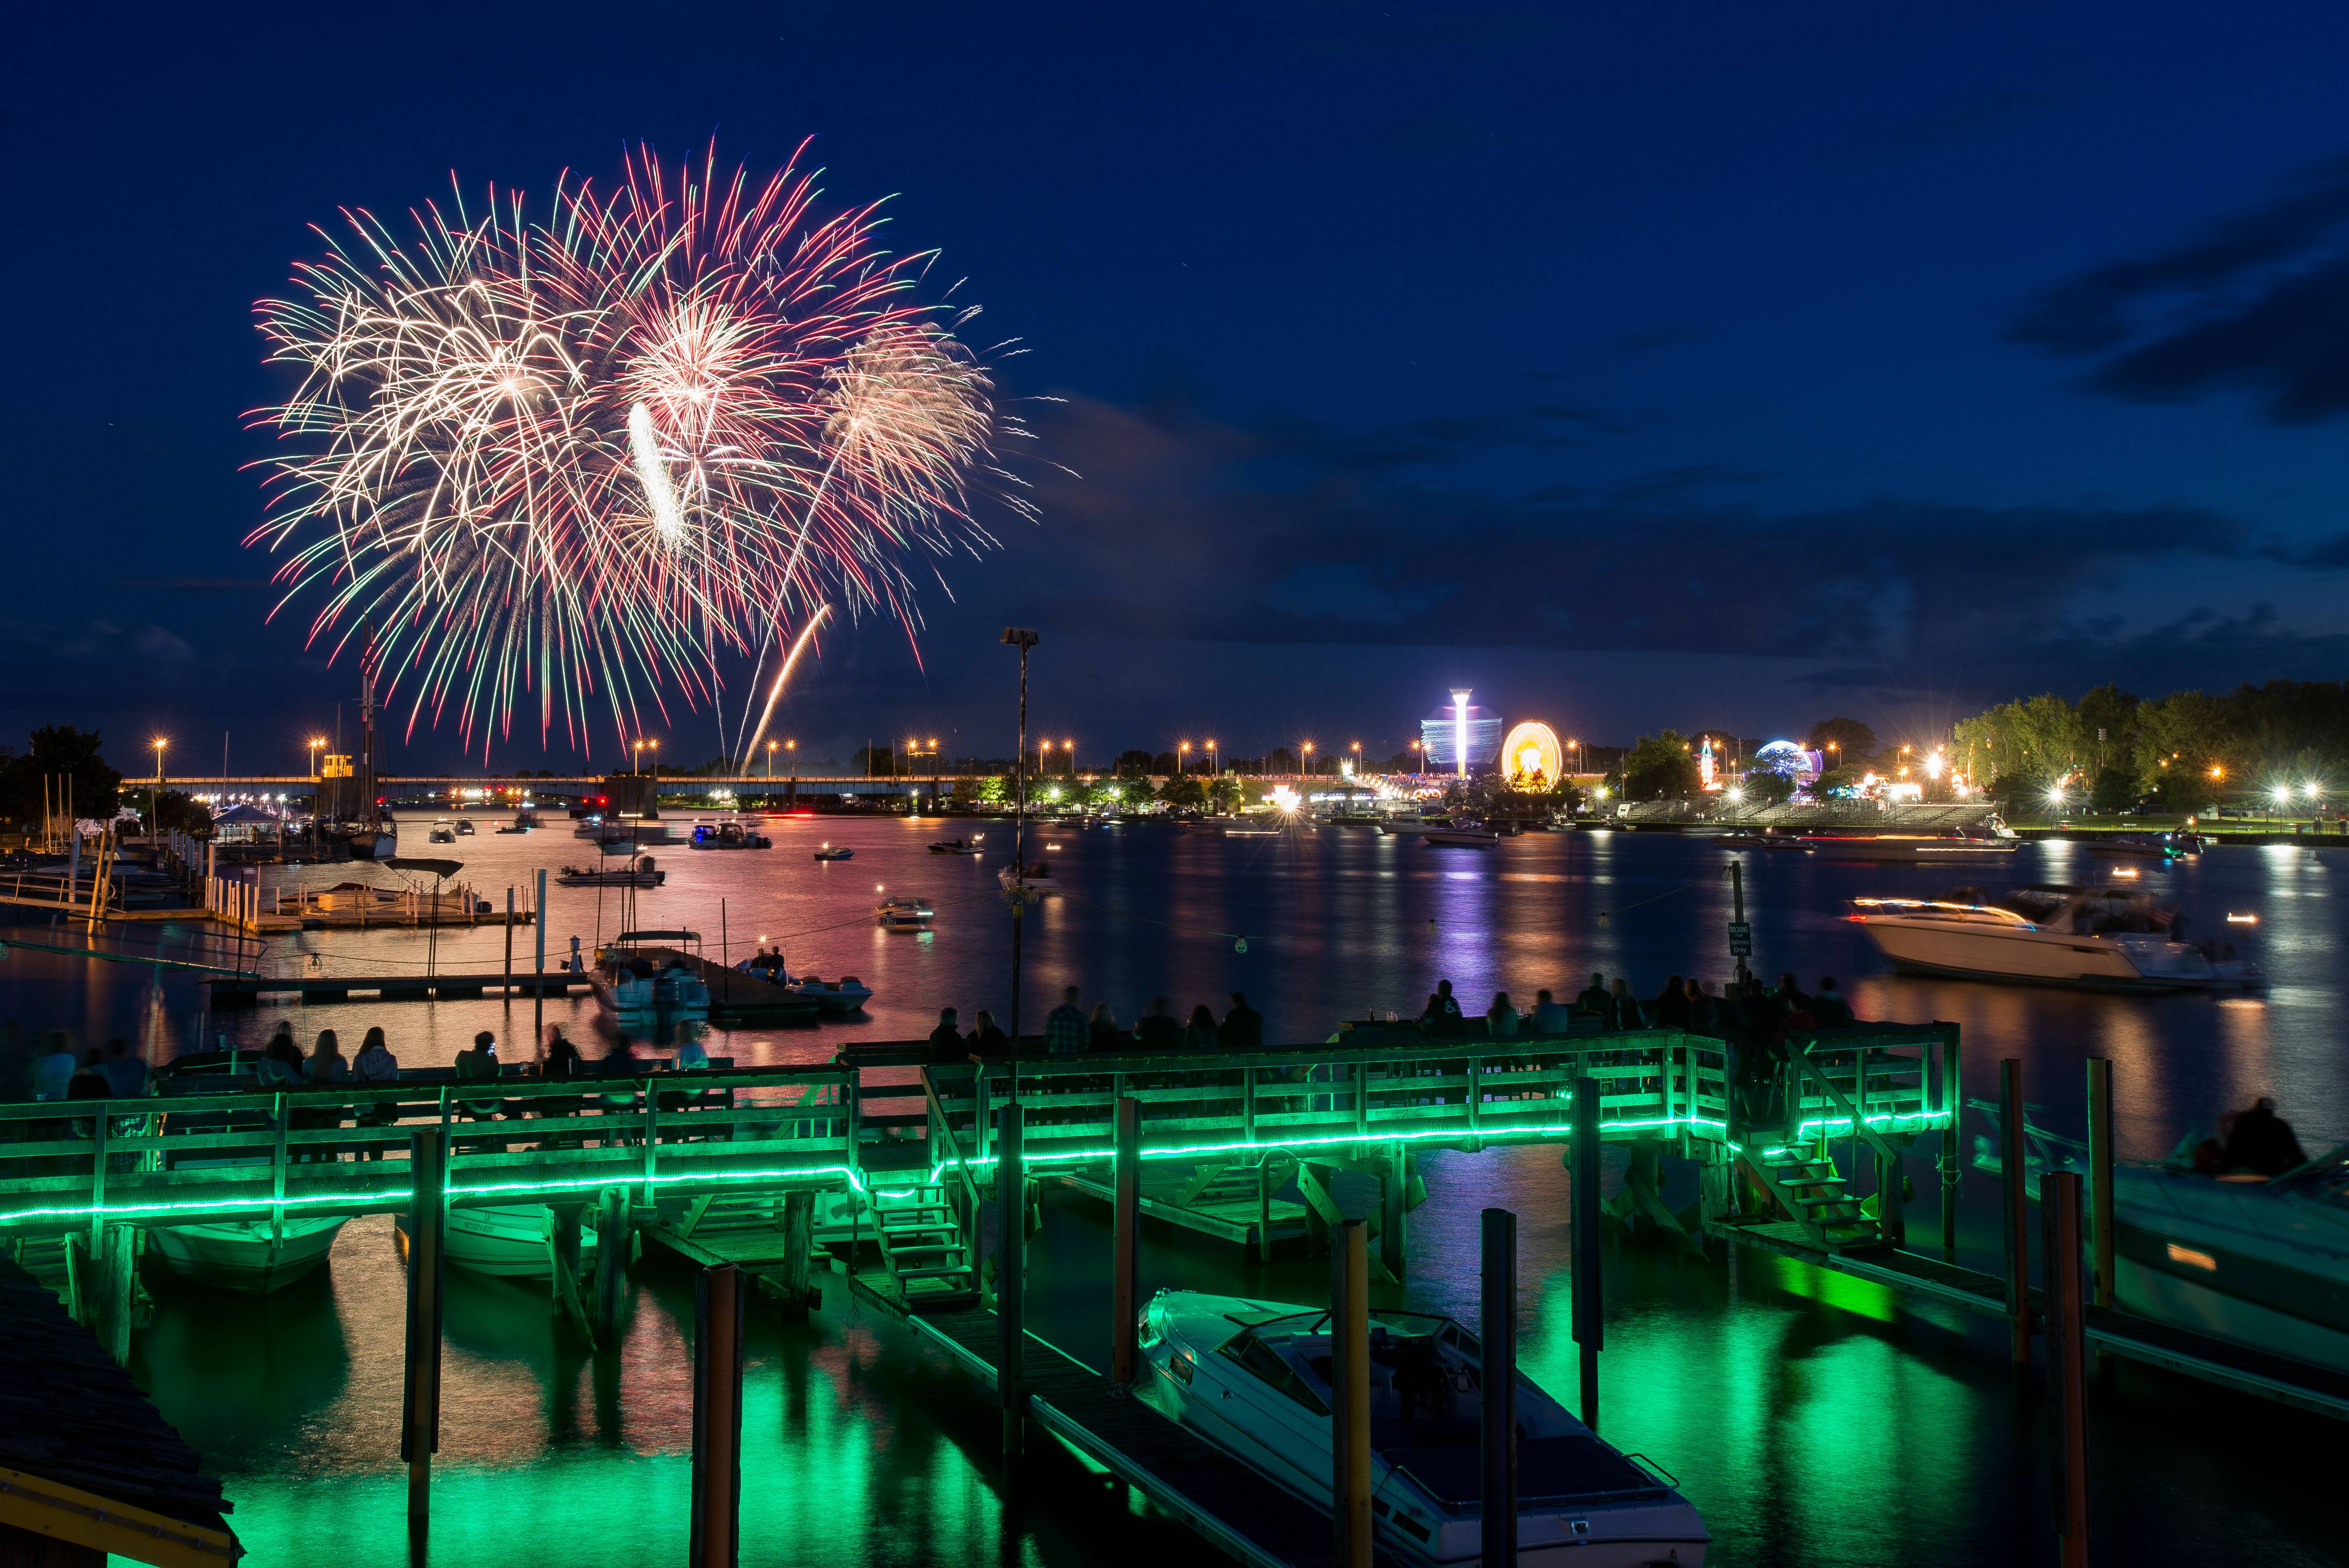 Fireworks light up the sky for the Firework Festival during the fireworks display on Thursday, July 3, 2014, over the Saginaw River in downtown Bay City. Mich.